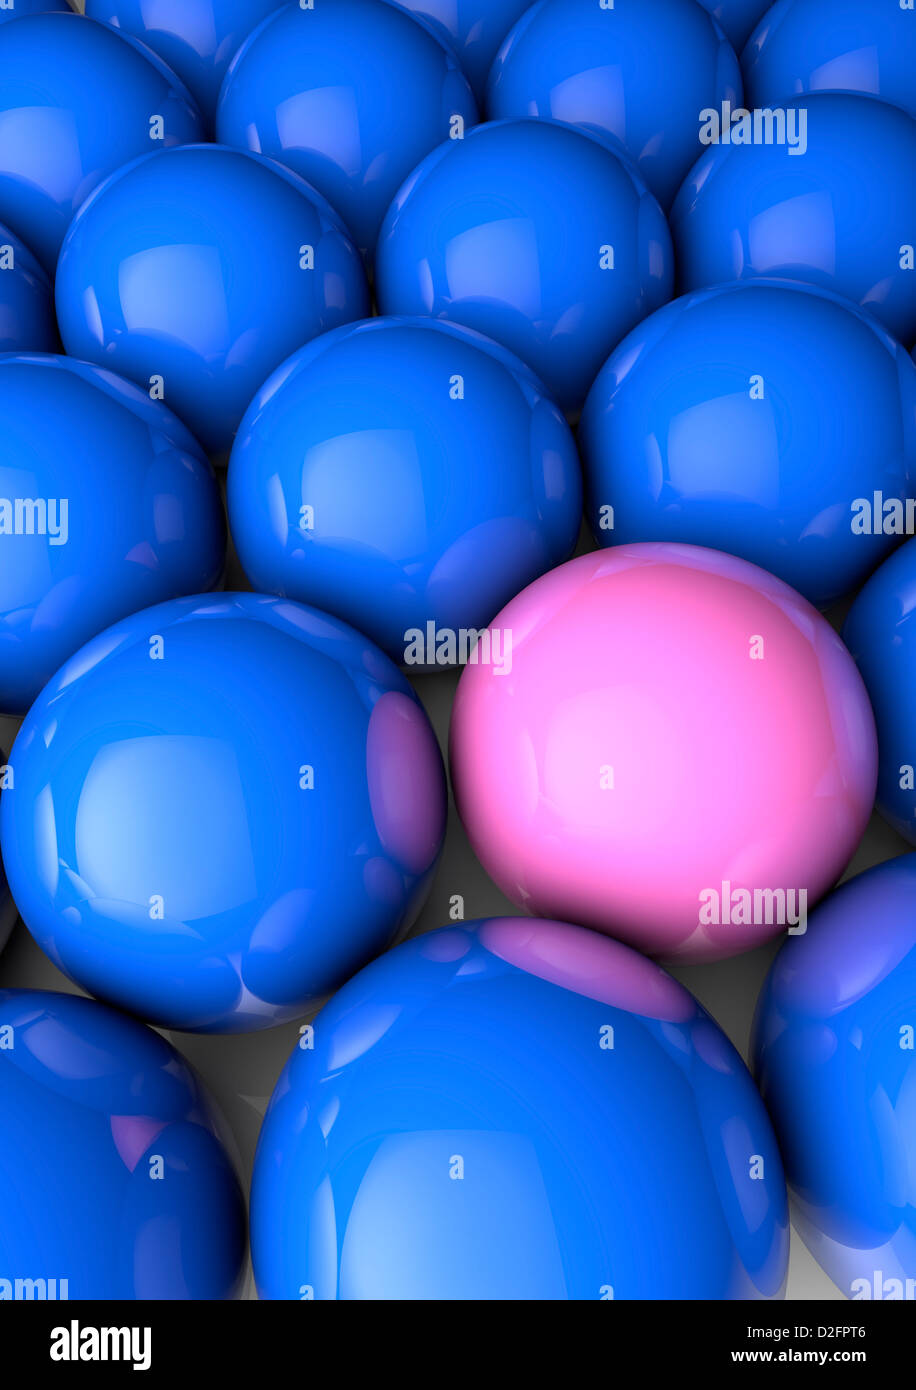 Close up of many blue spheres with one pink one - difference, inequality concept - Stock Image